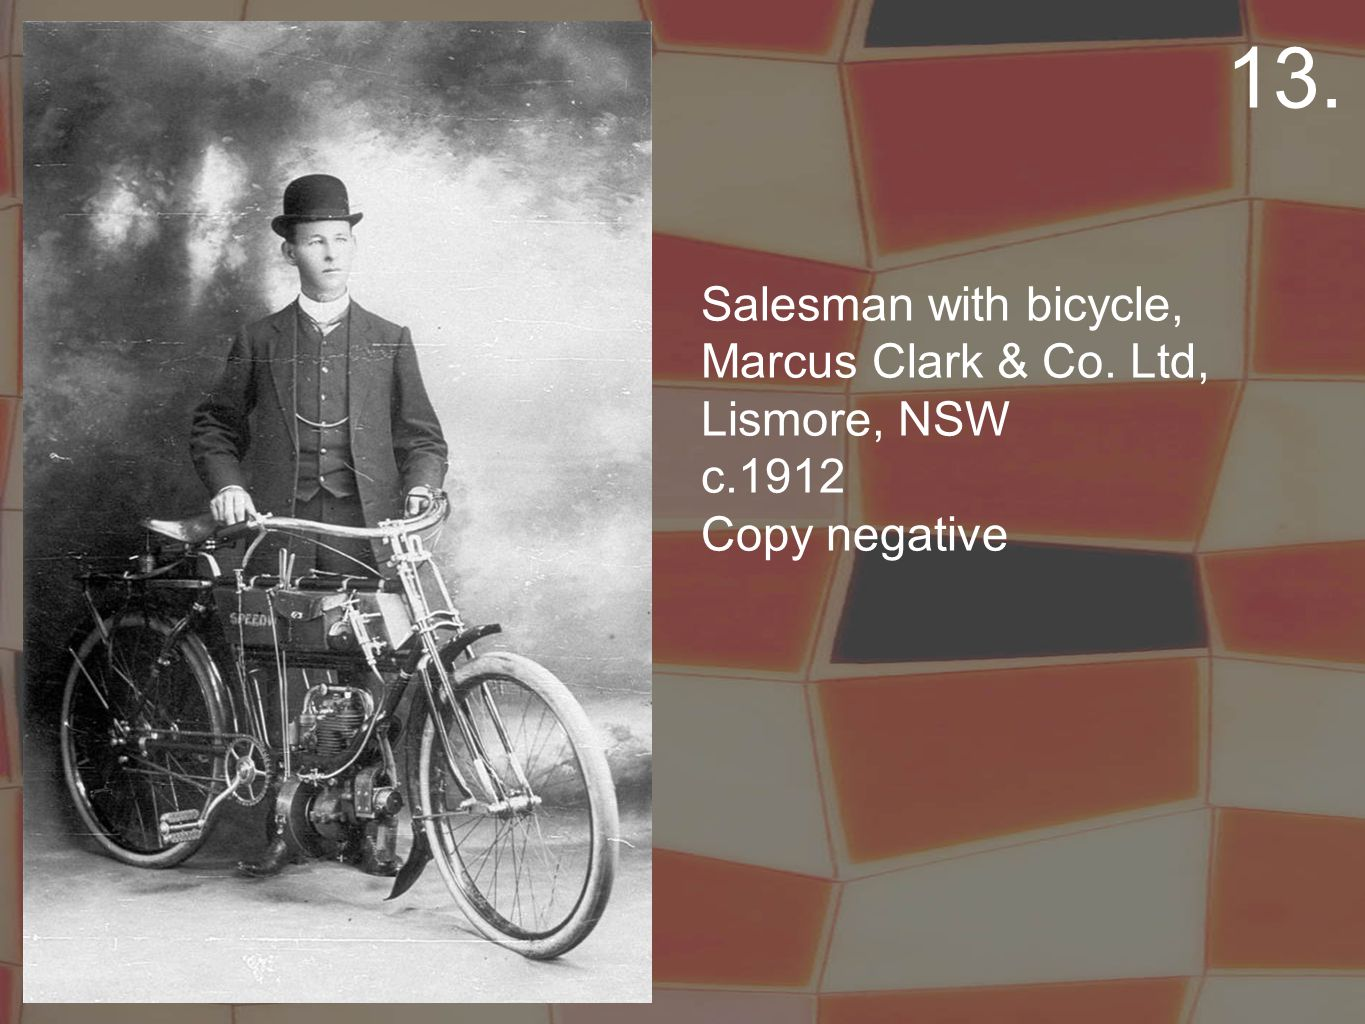 Salesman with bicycle, Marcus Clark & Co. Ltd, Lismore, NSW c.1912 Copy negative 13.